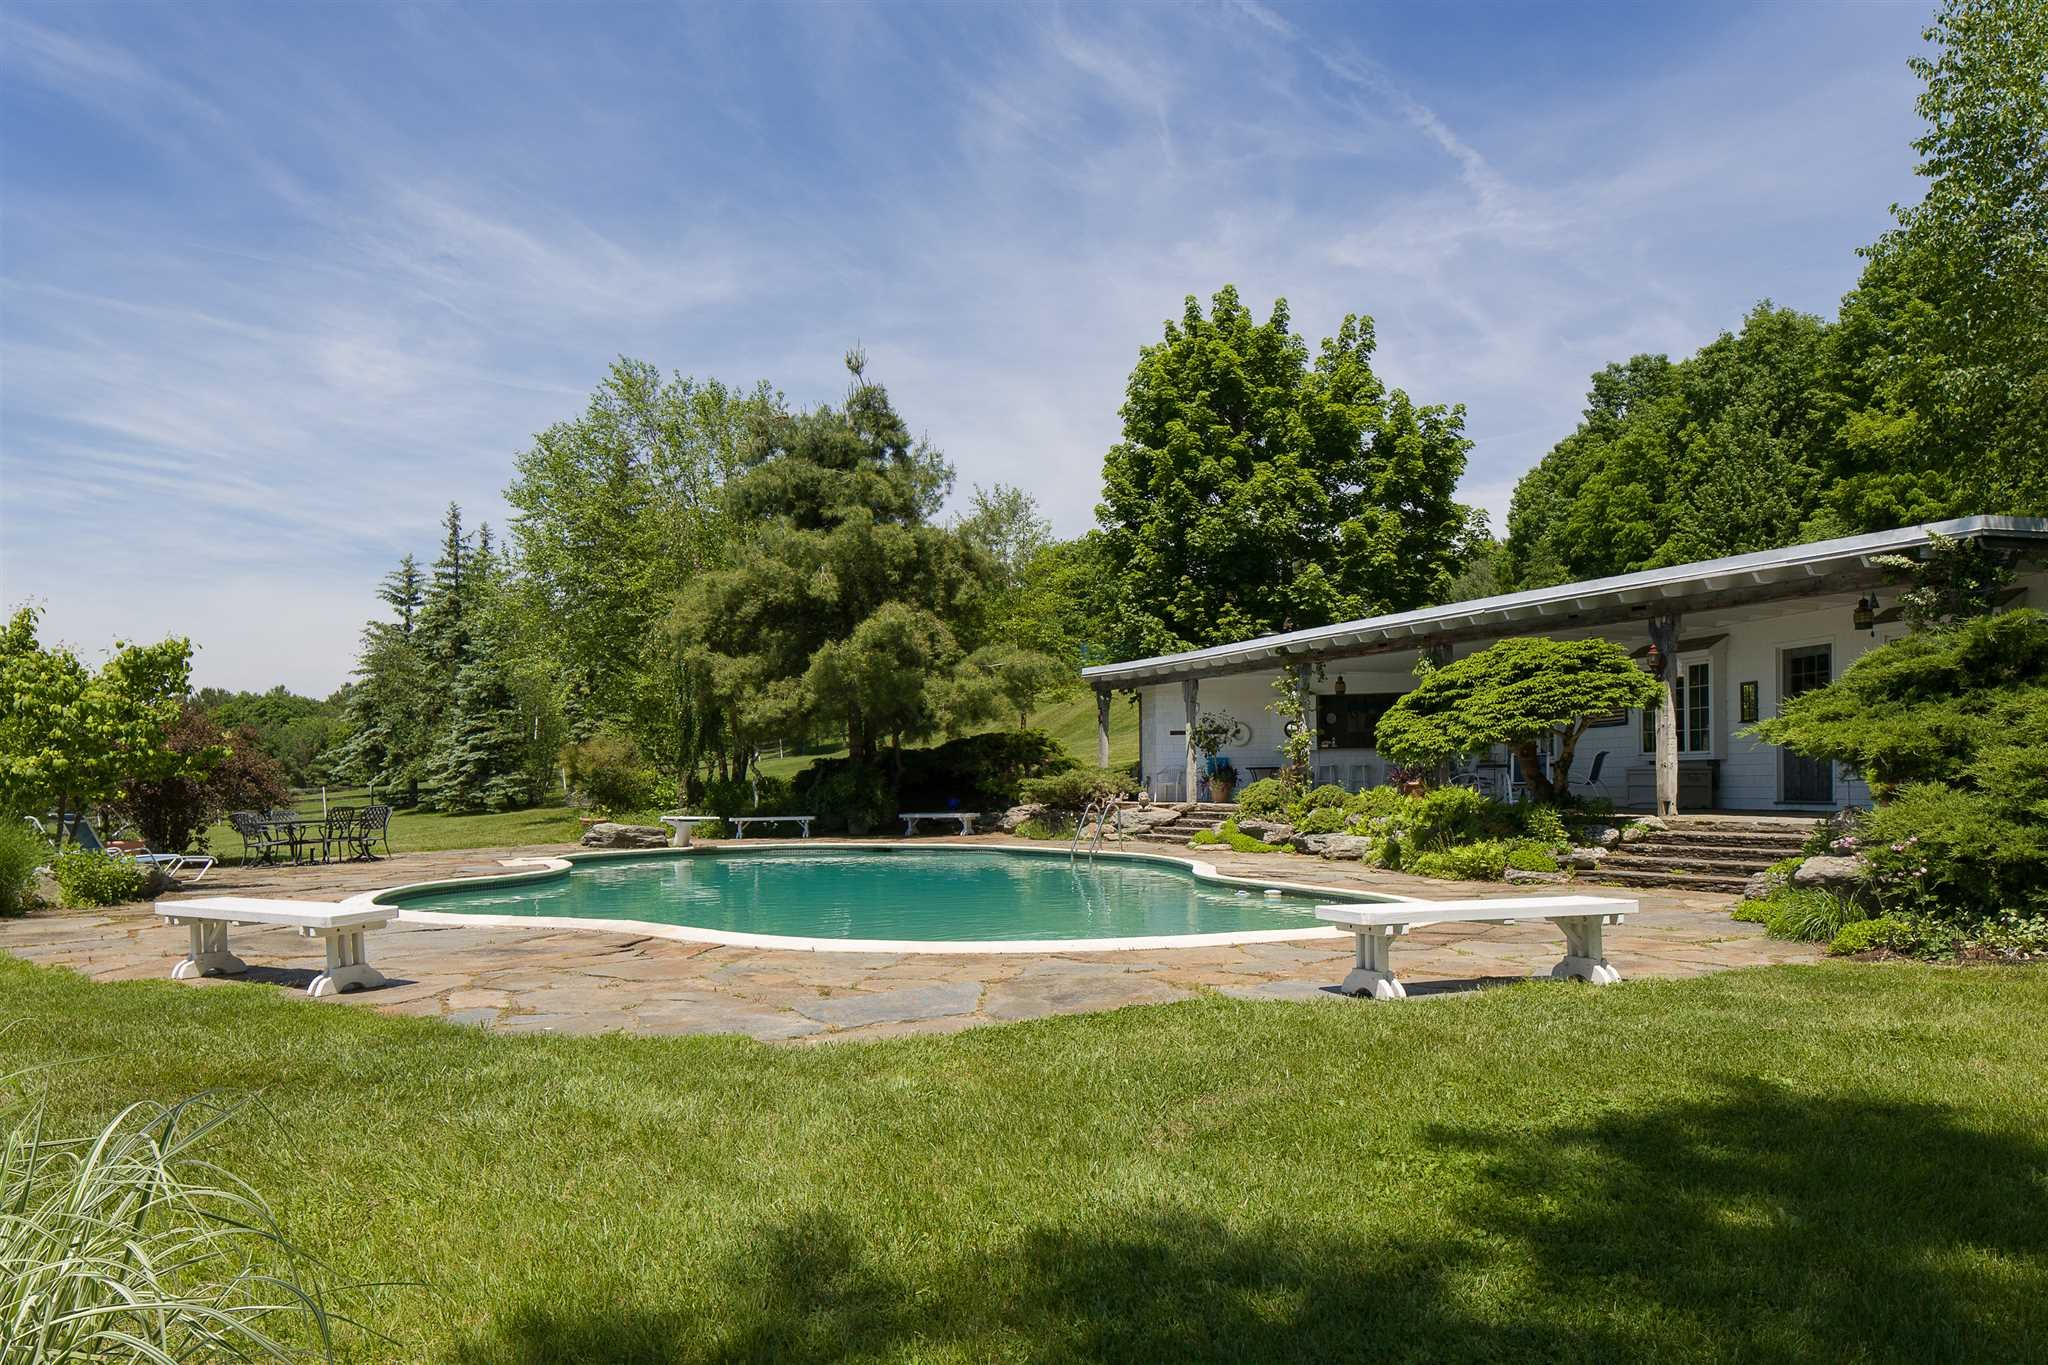 Additional photo for property listing at 108 RAUP ROAD 108 RAUP ROAD Chatham, New York 12037 United States